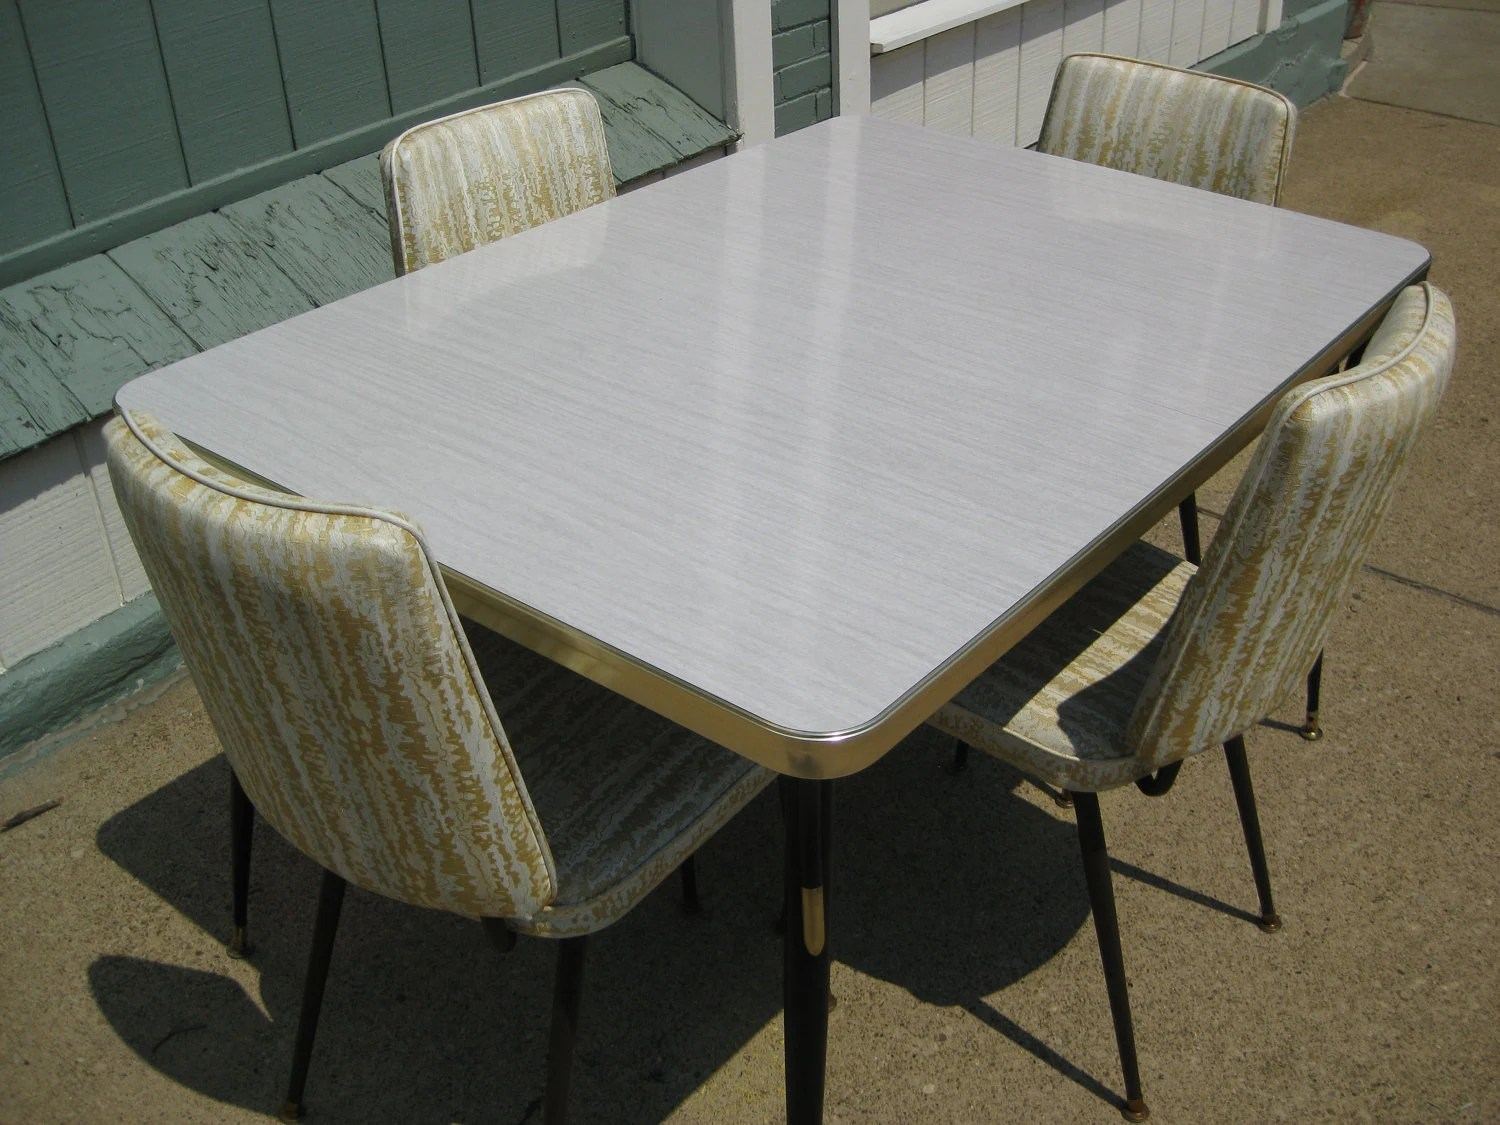 50s Table And Chairs Vintage 1950 39s Formica Kitchen Table W 4 Chairs 50